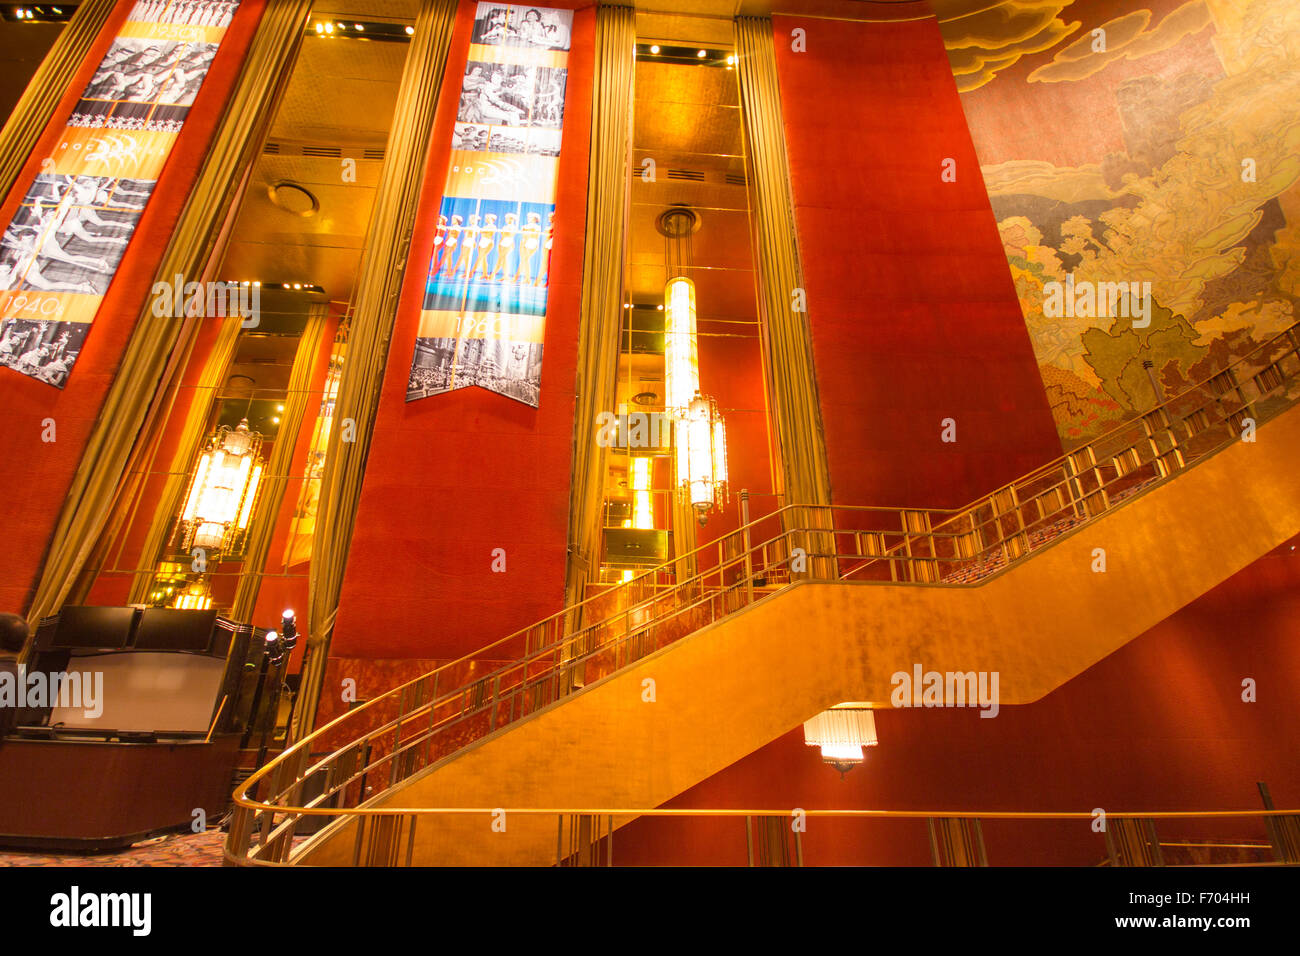 View of staircase and ornately decorated walls at historic Radio City Music Hall in New York City - Stock Image